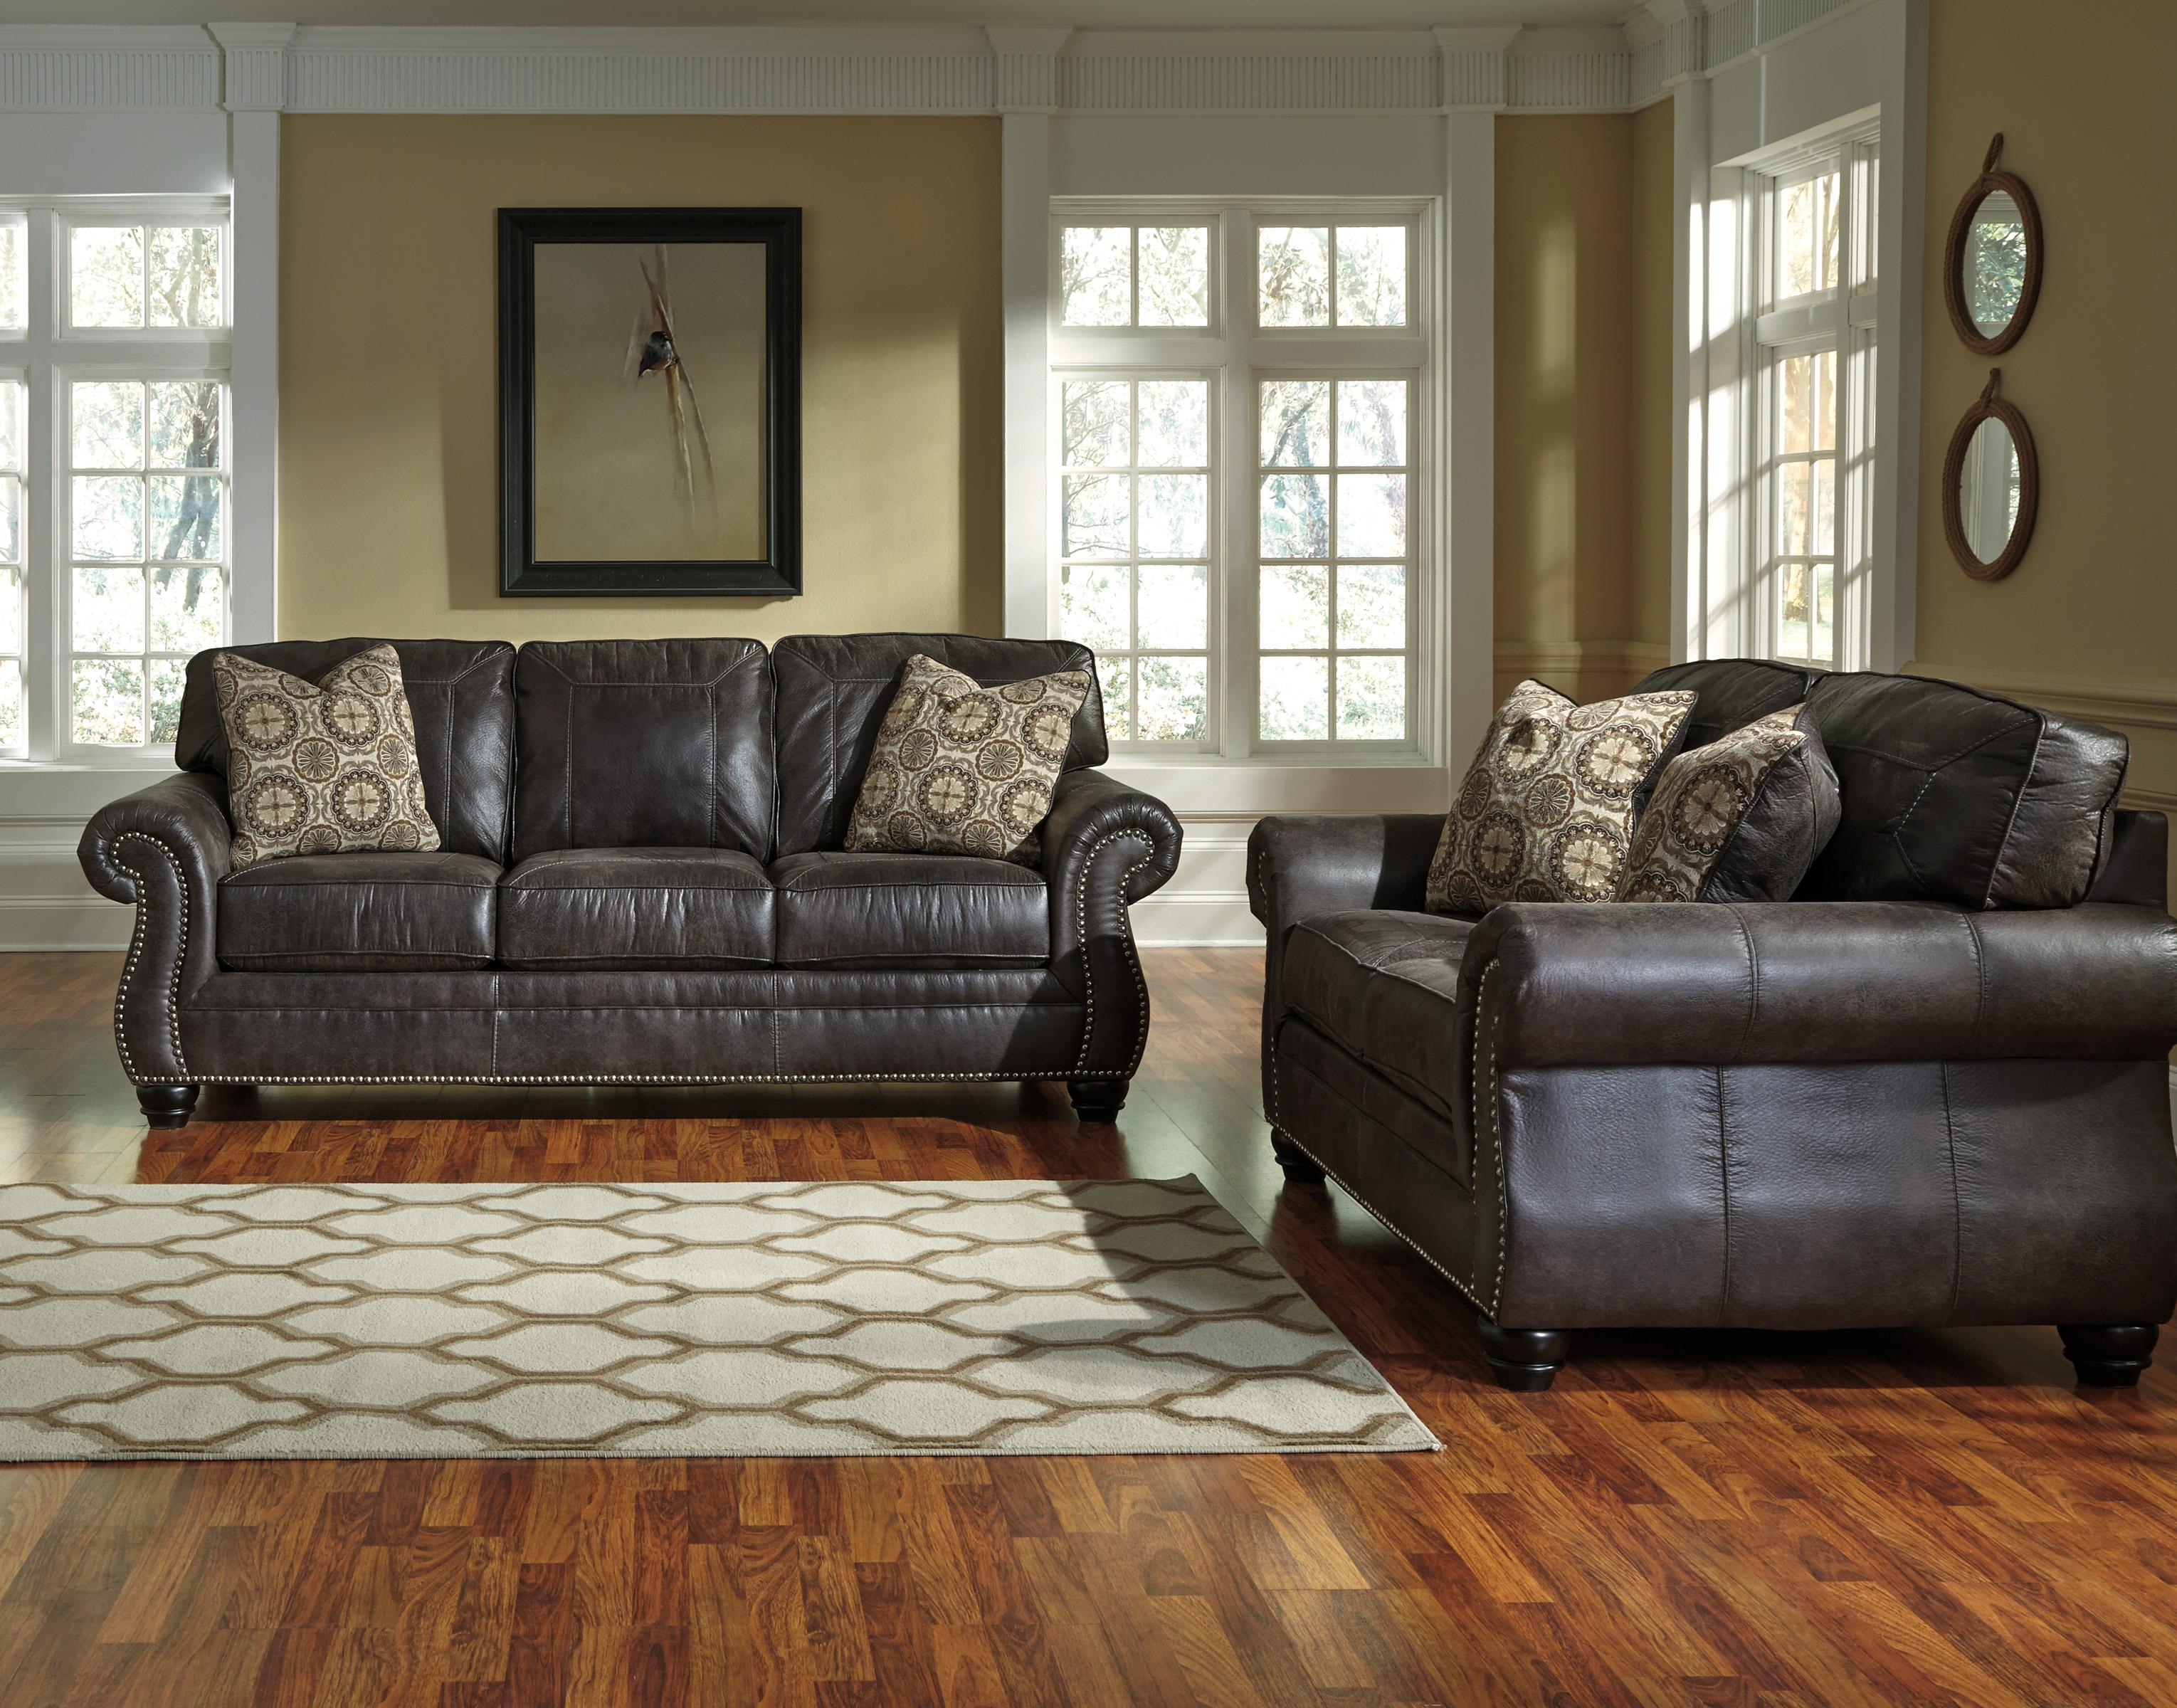 Breville Stationary Living Room Group by Benchcraft at Miller Waldrop Furniture and Decor